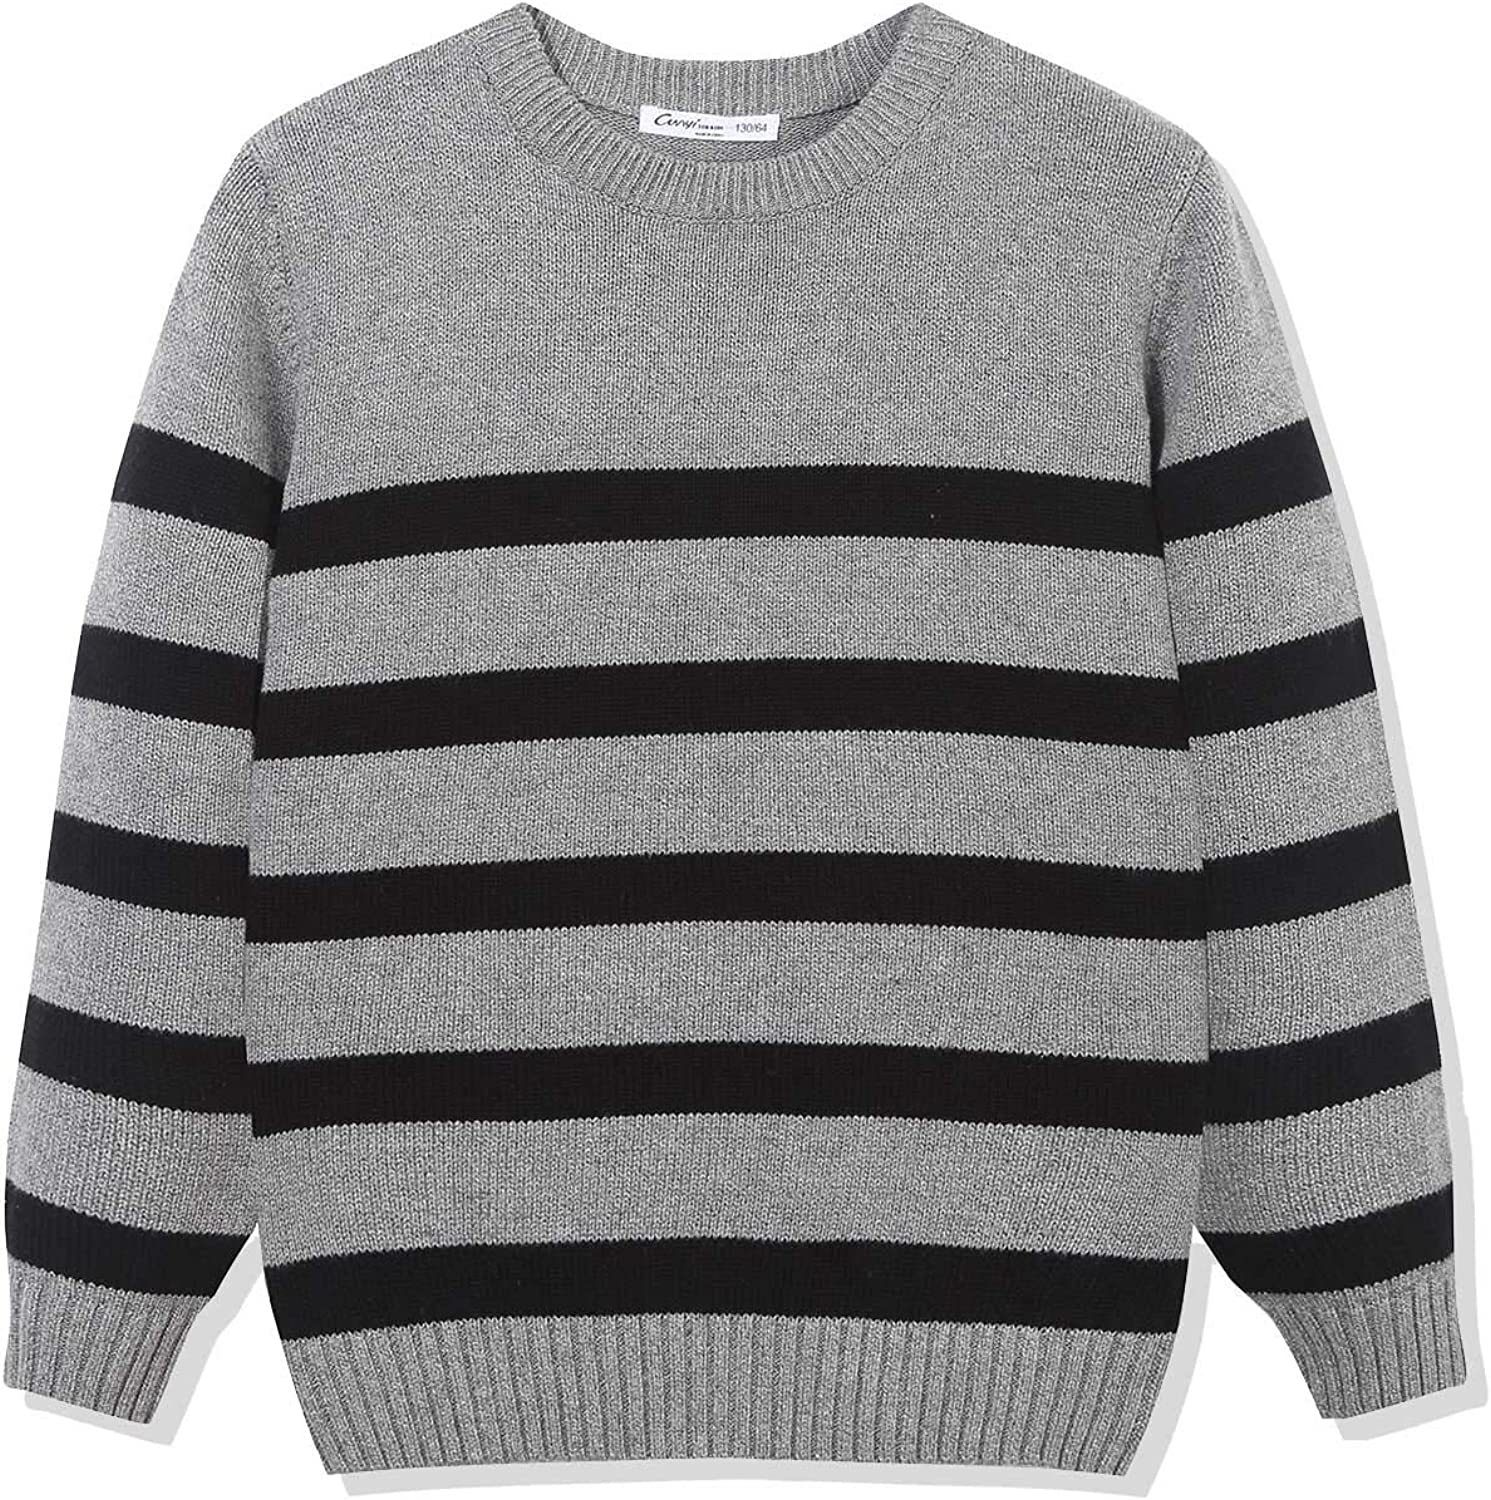 CUNYI Boys' Crewneck Cotton Striped Knit Sweater Pullover Gray Long Sleeve